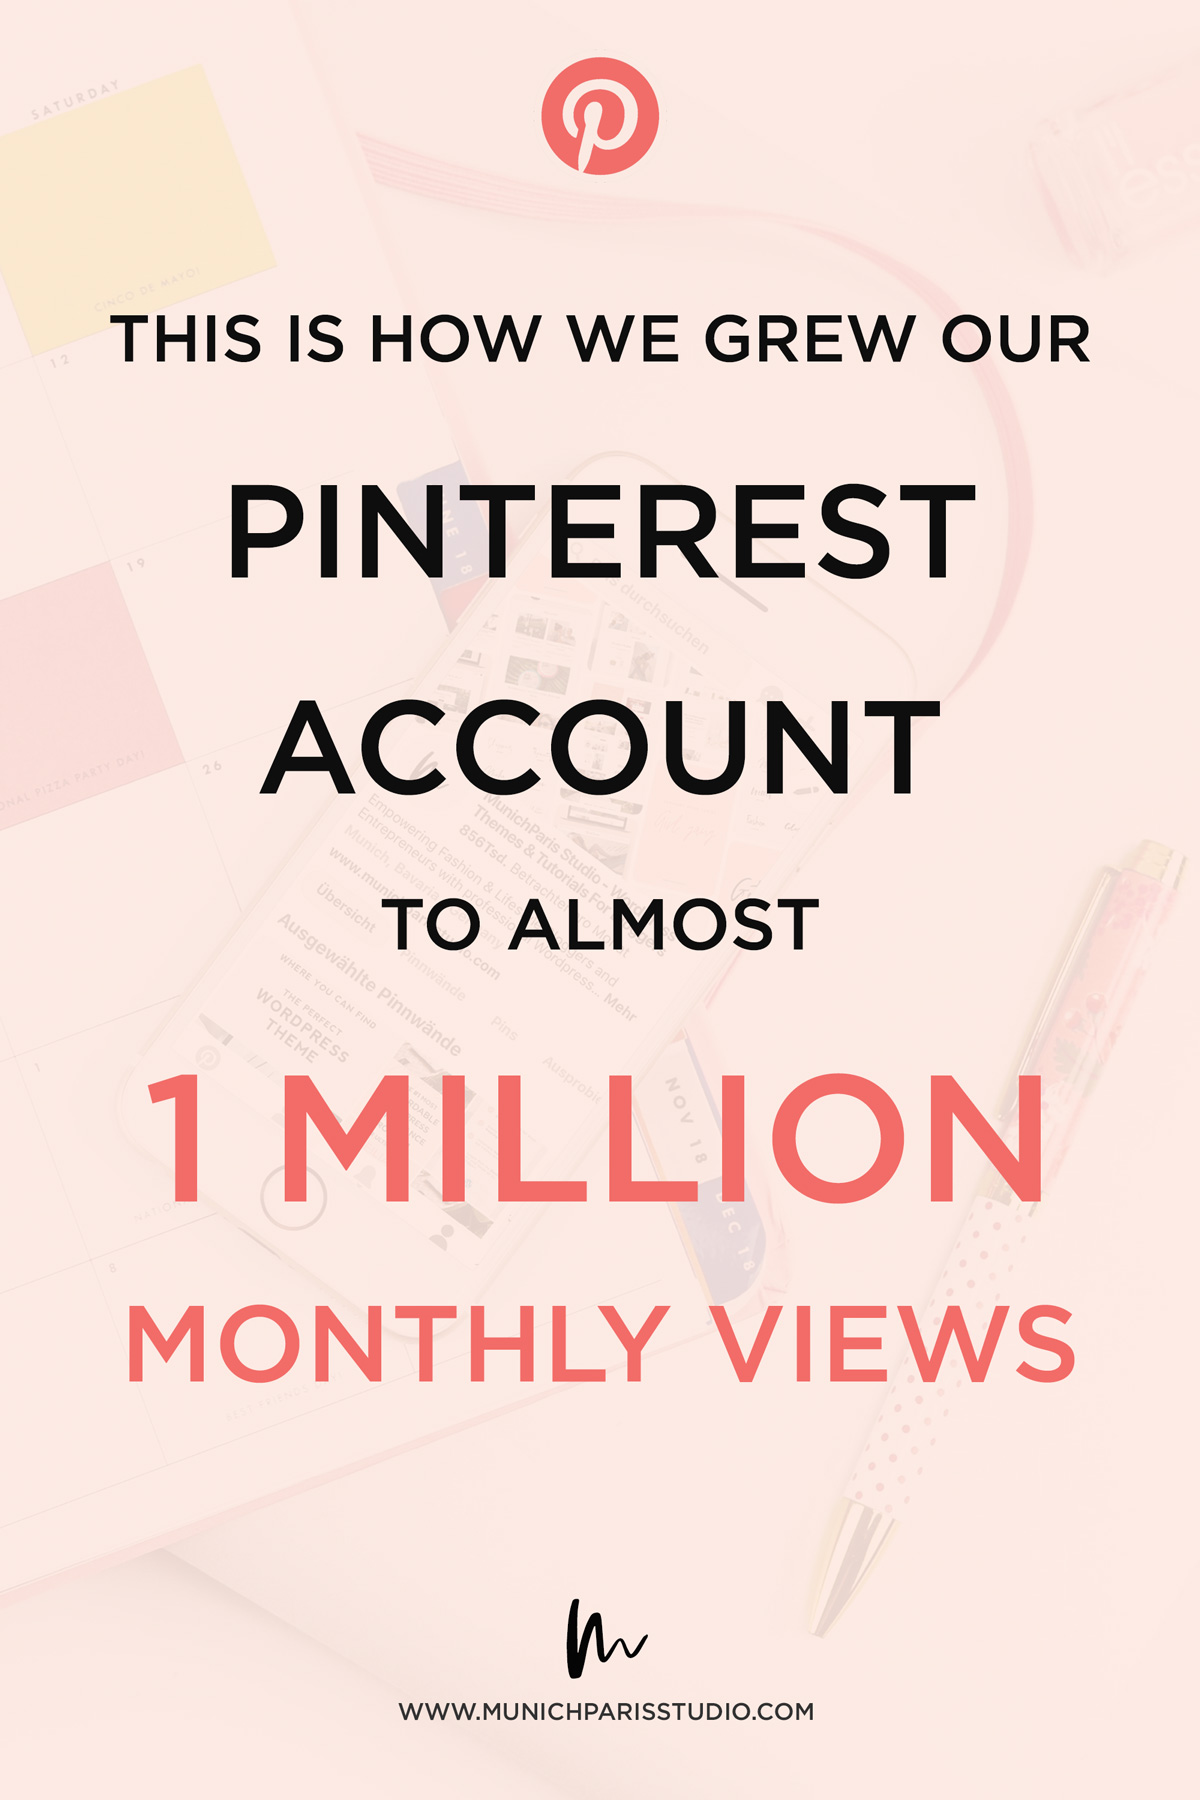 How we grew our Pinterest Business Account to 1 Million Views per Month - read our Pinterest Success Story and discover our Pinning Strategy and favorite Pinterest Tools for Business